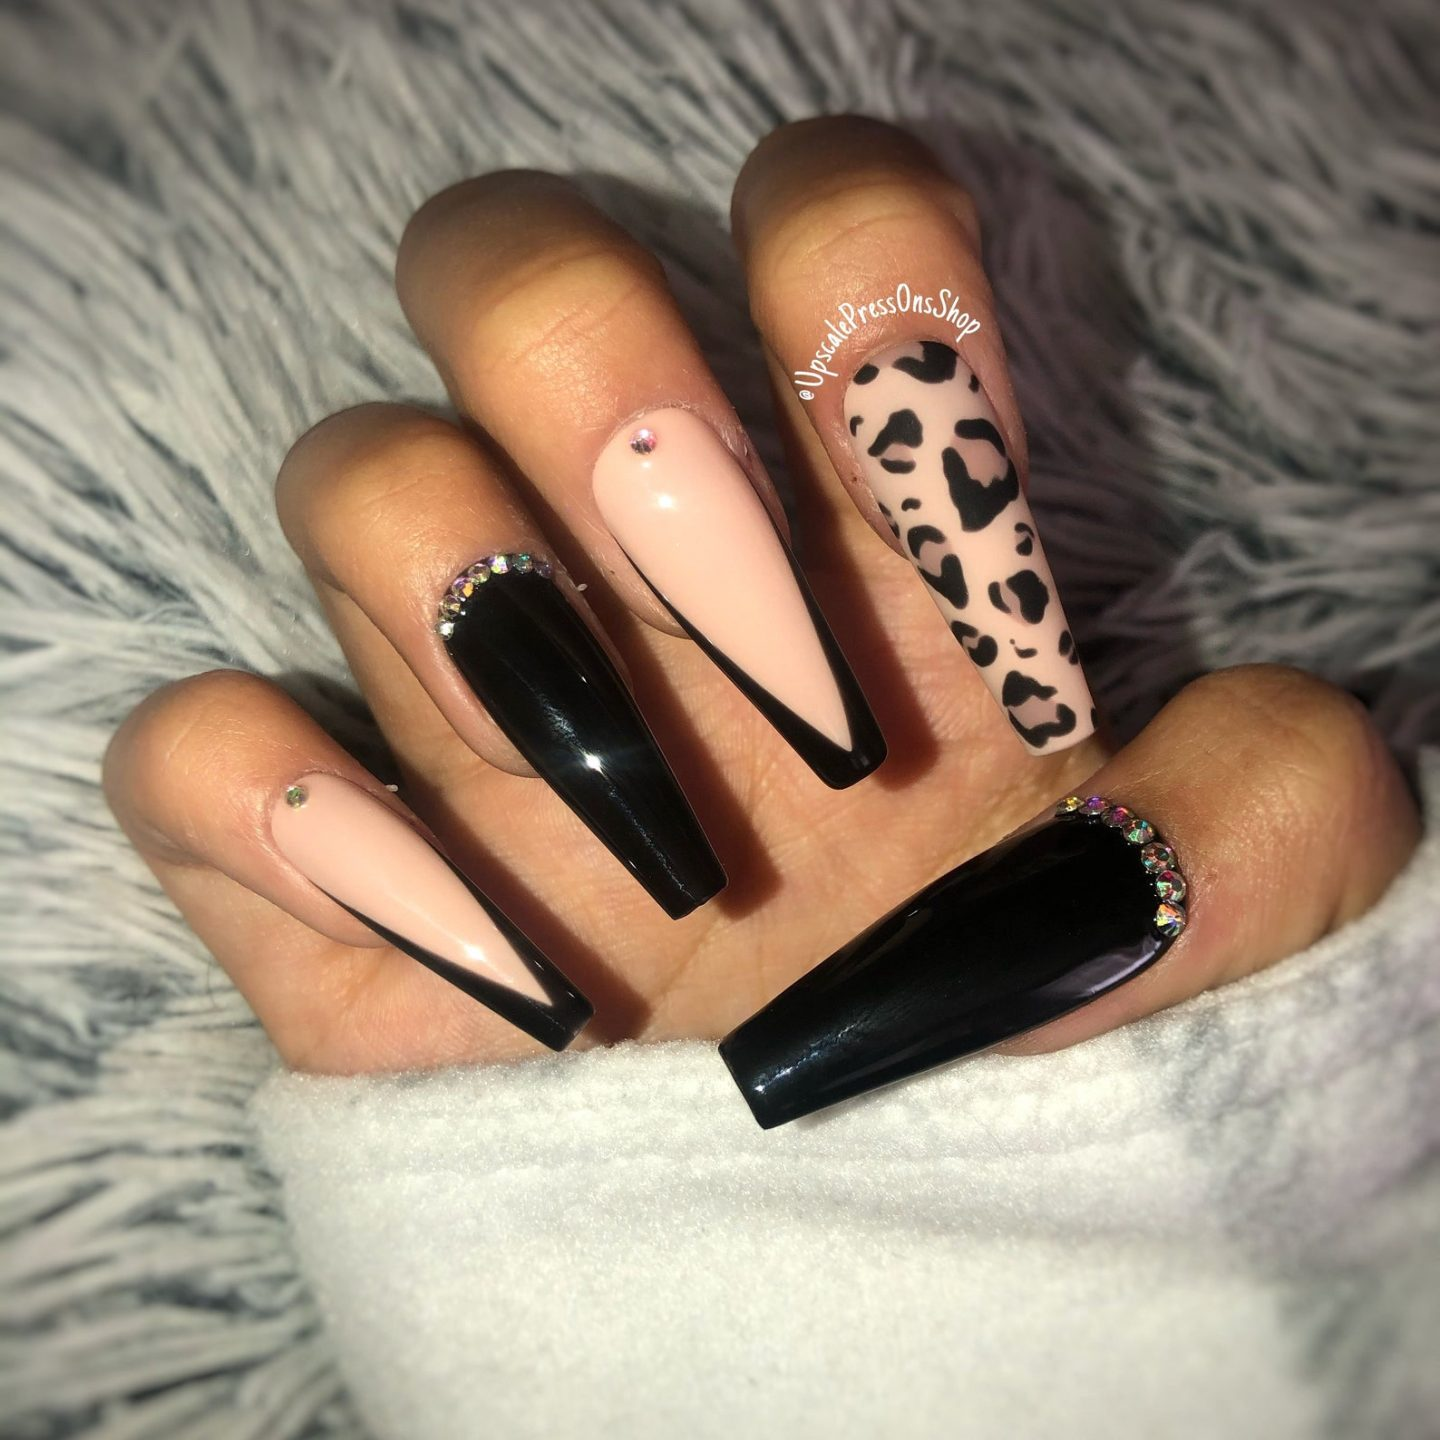 Black French tip nails with leopard print